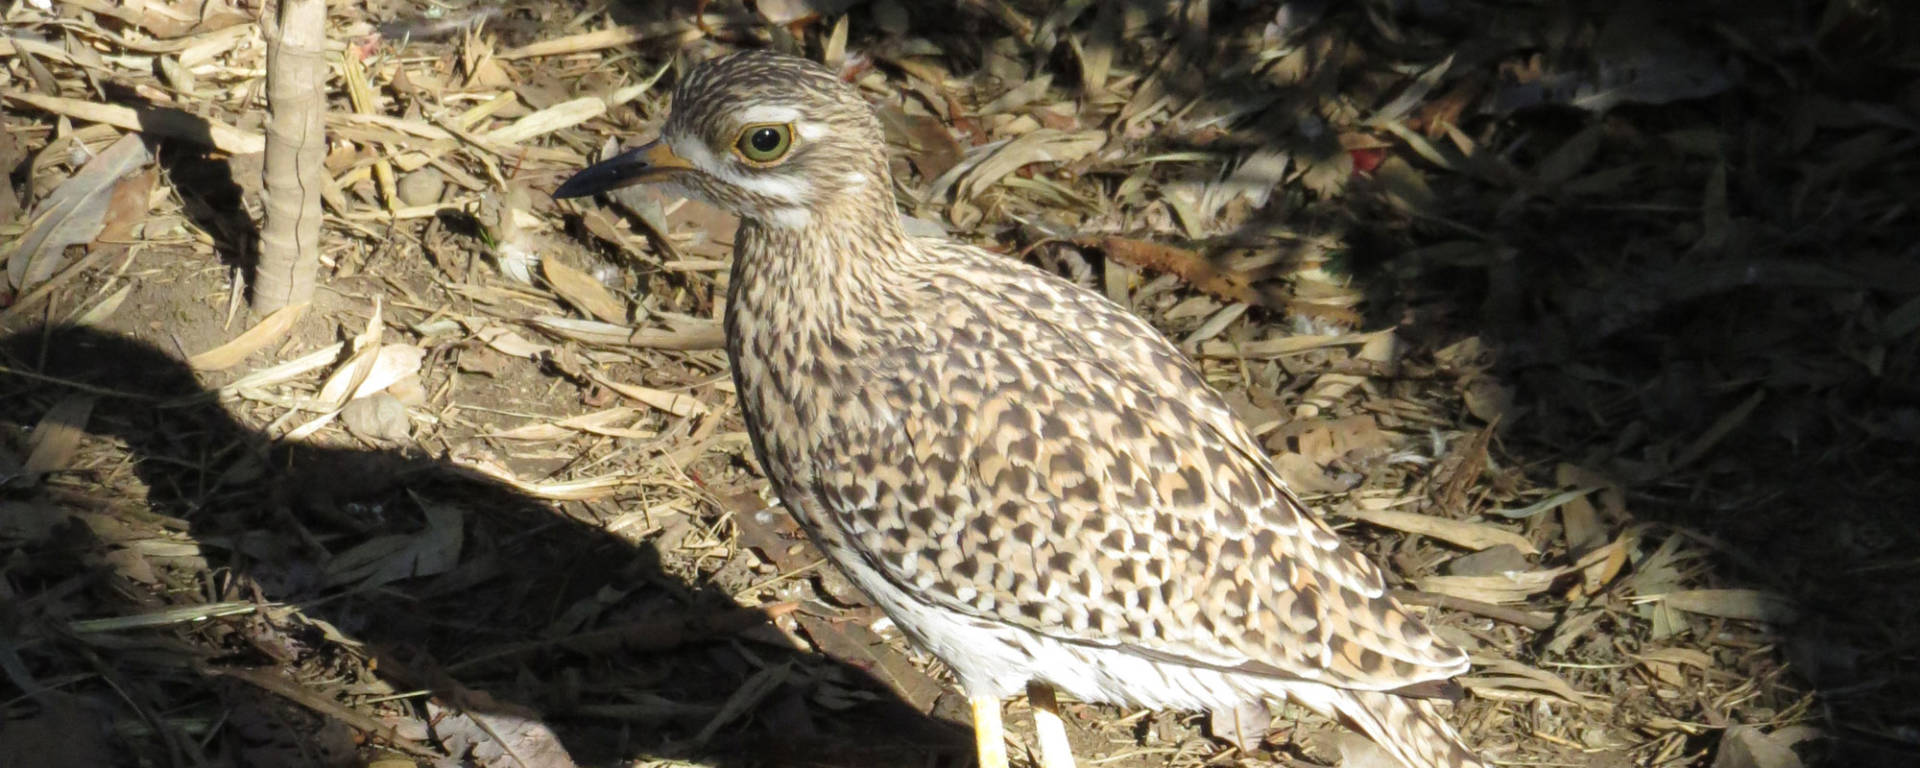 Cape Thick-knee by Cheryl Crowley